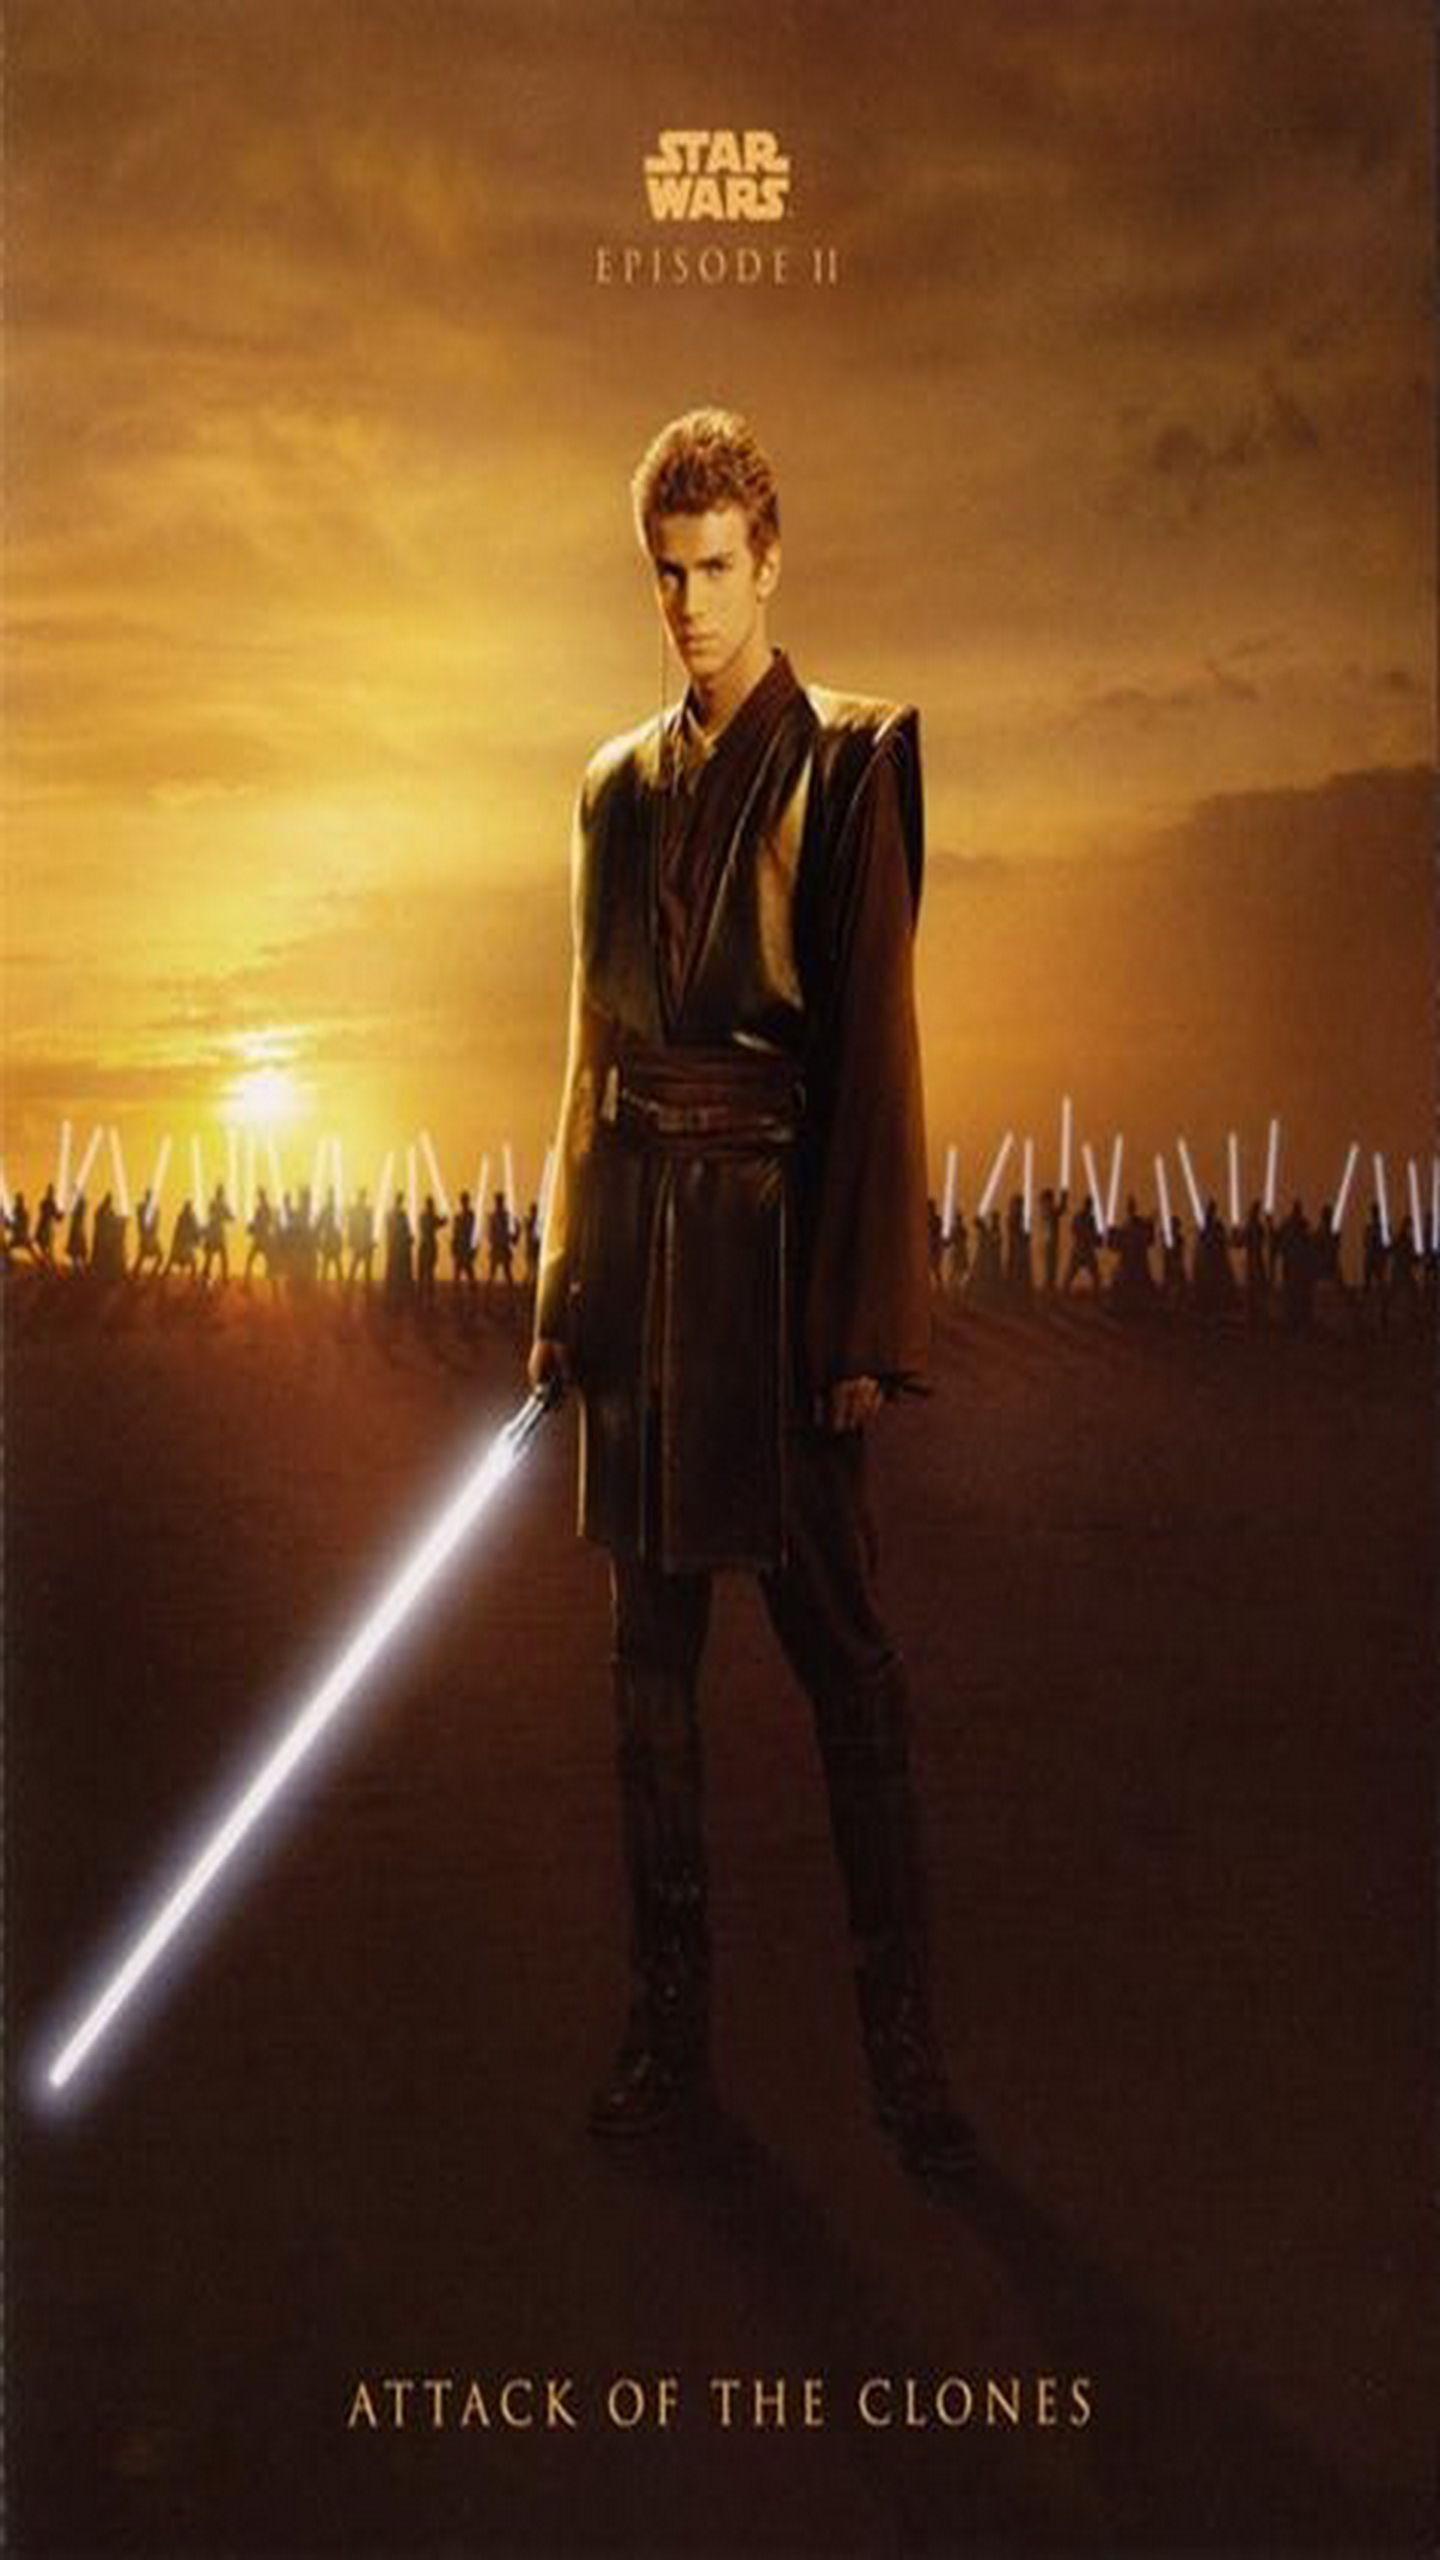 Free Download Star Wars Episode Ii Attack Of The Clones Galaxy Note 4 Wallpaper 1440x2560 For Your Desktop Mobile Tablet Explore 50 Star Wars Note 4 Wallpaper Star Wars